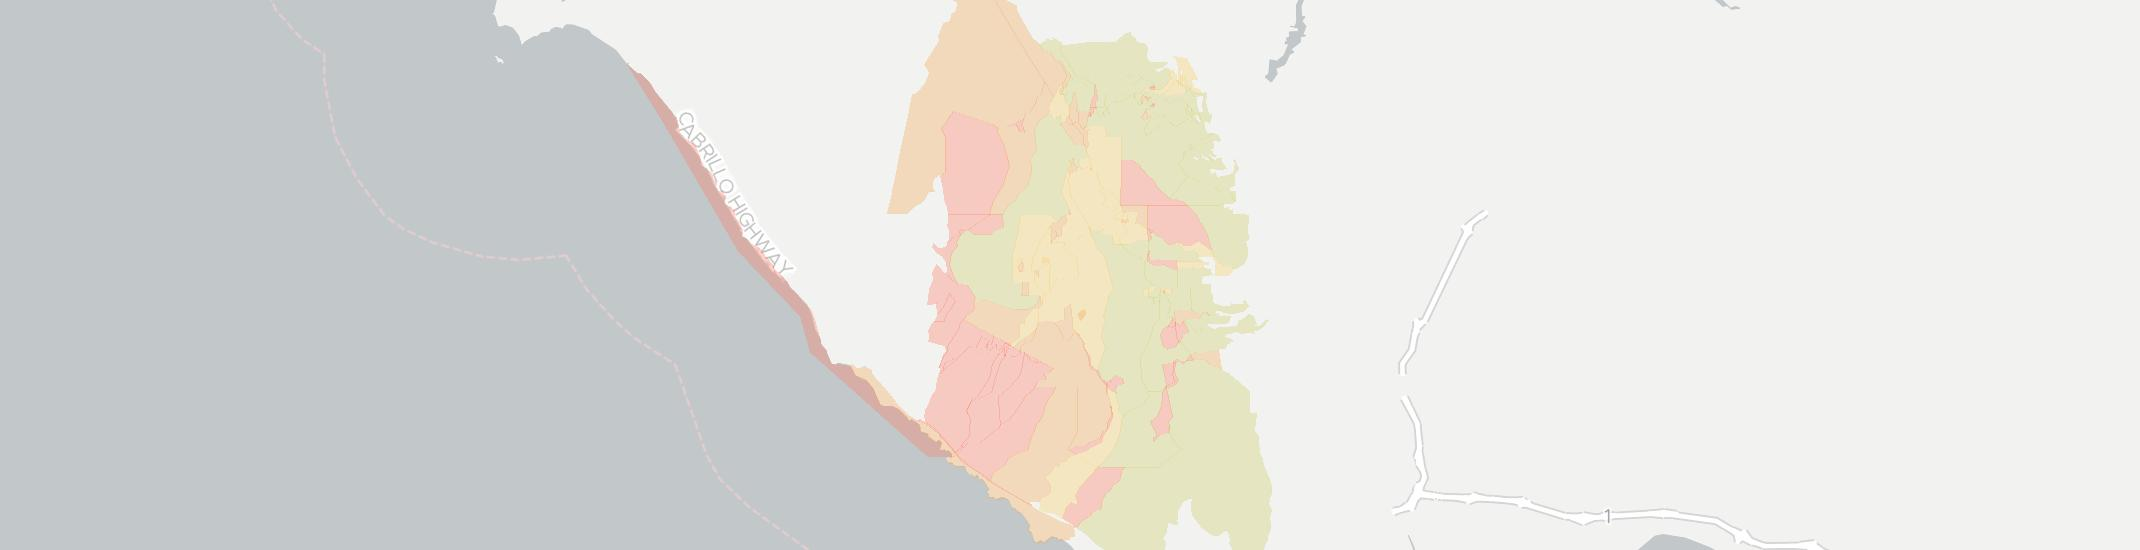 Bonny Doon Internet Competition Map. Click for interactive map.